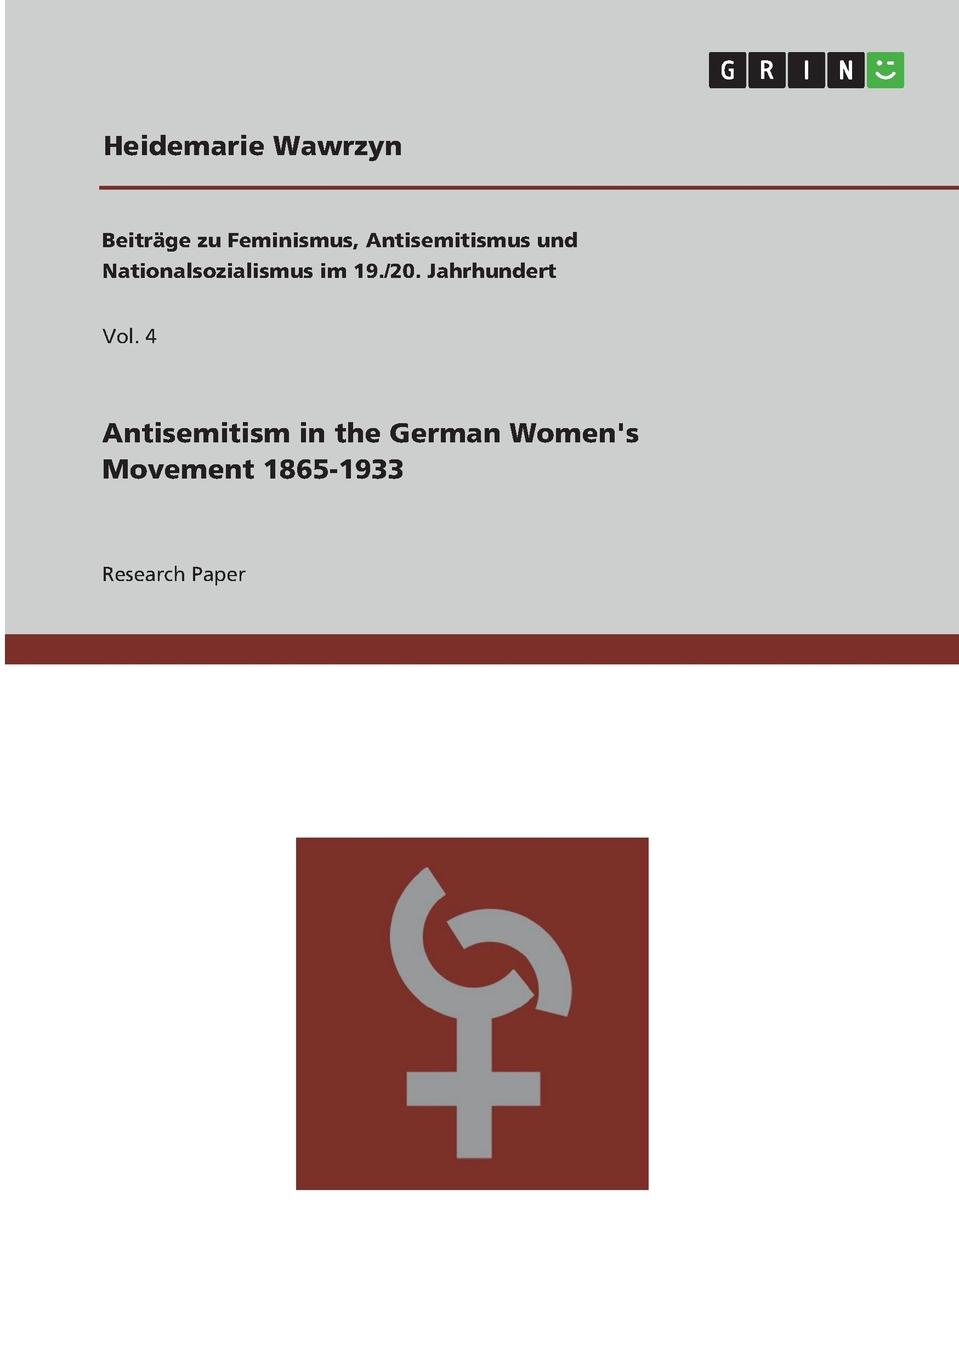 Antisemitism in the German Women.s Movement 1865-1933. Heidemarie Wawrzyn